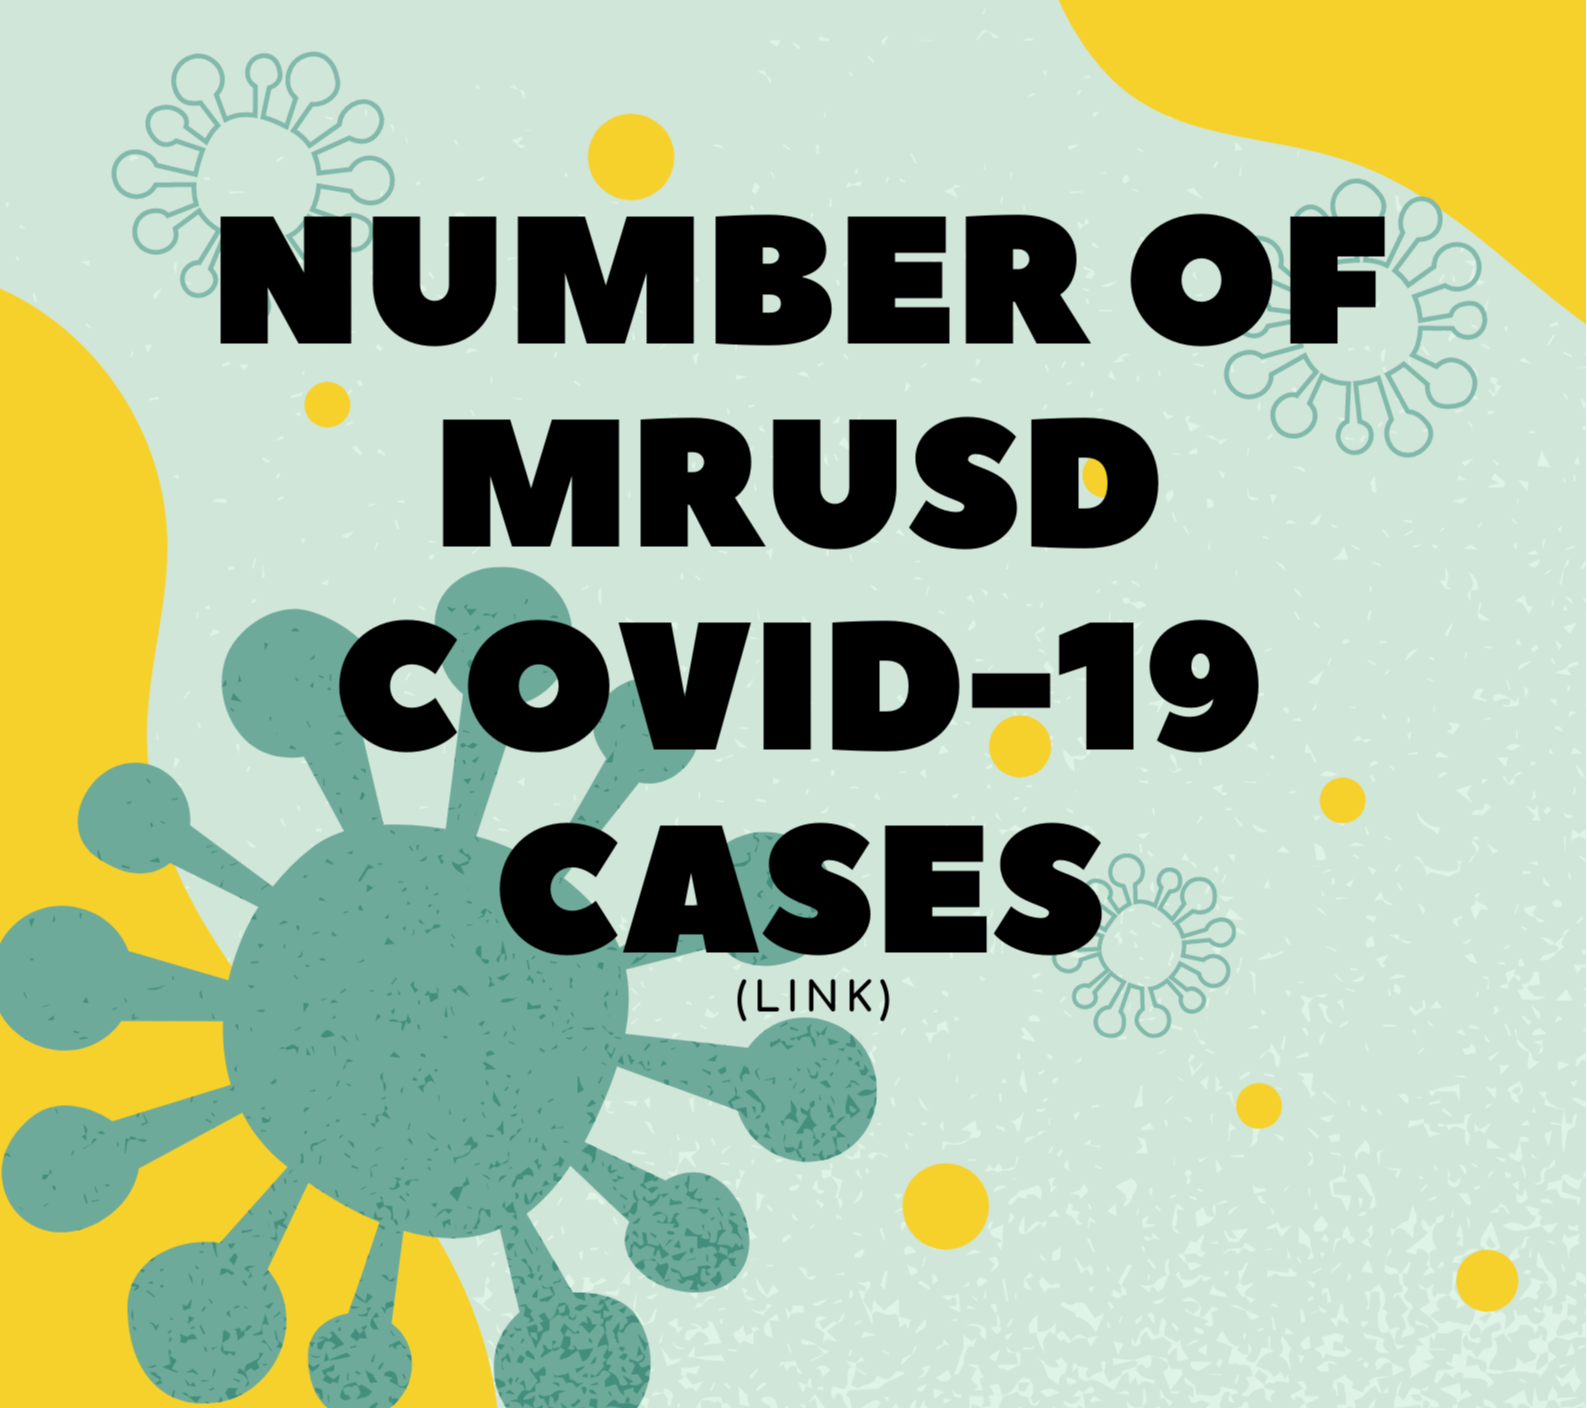 # of cases